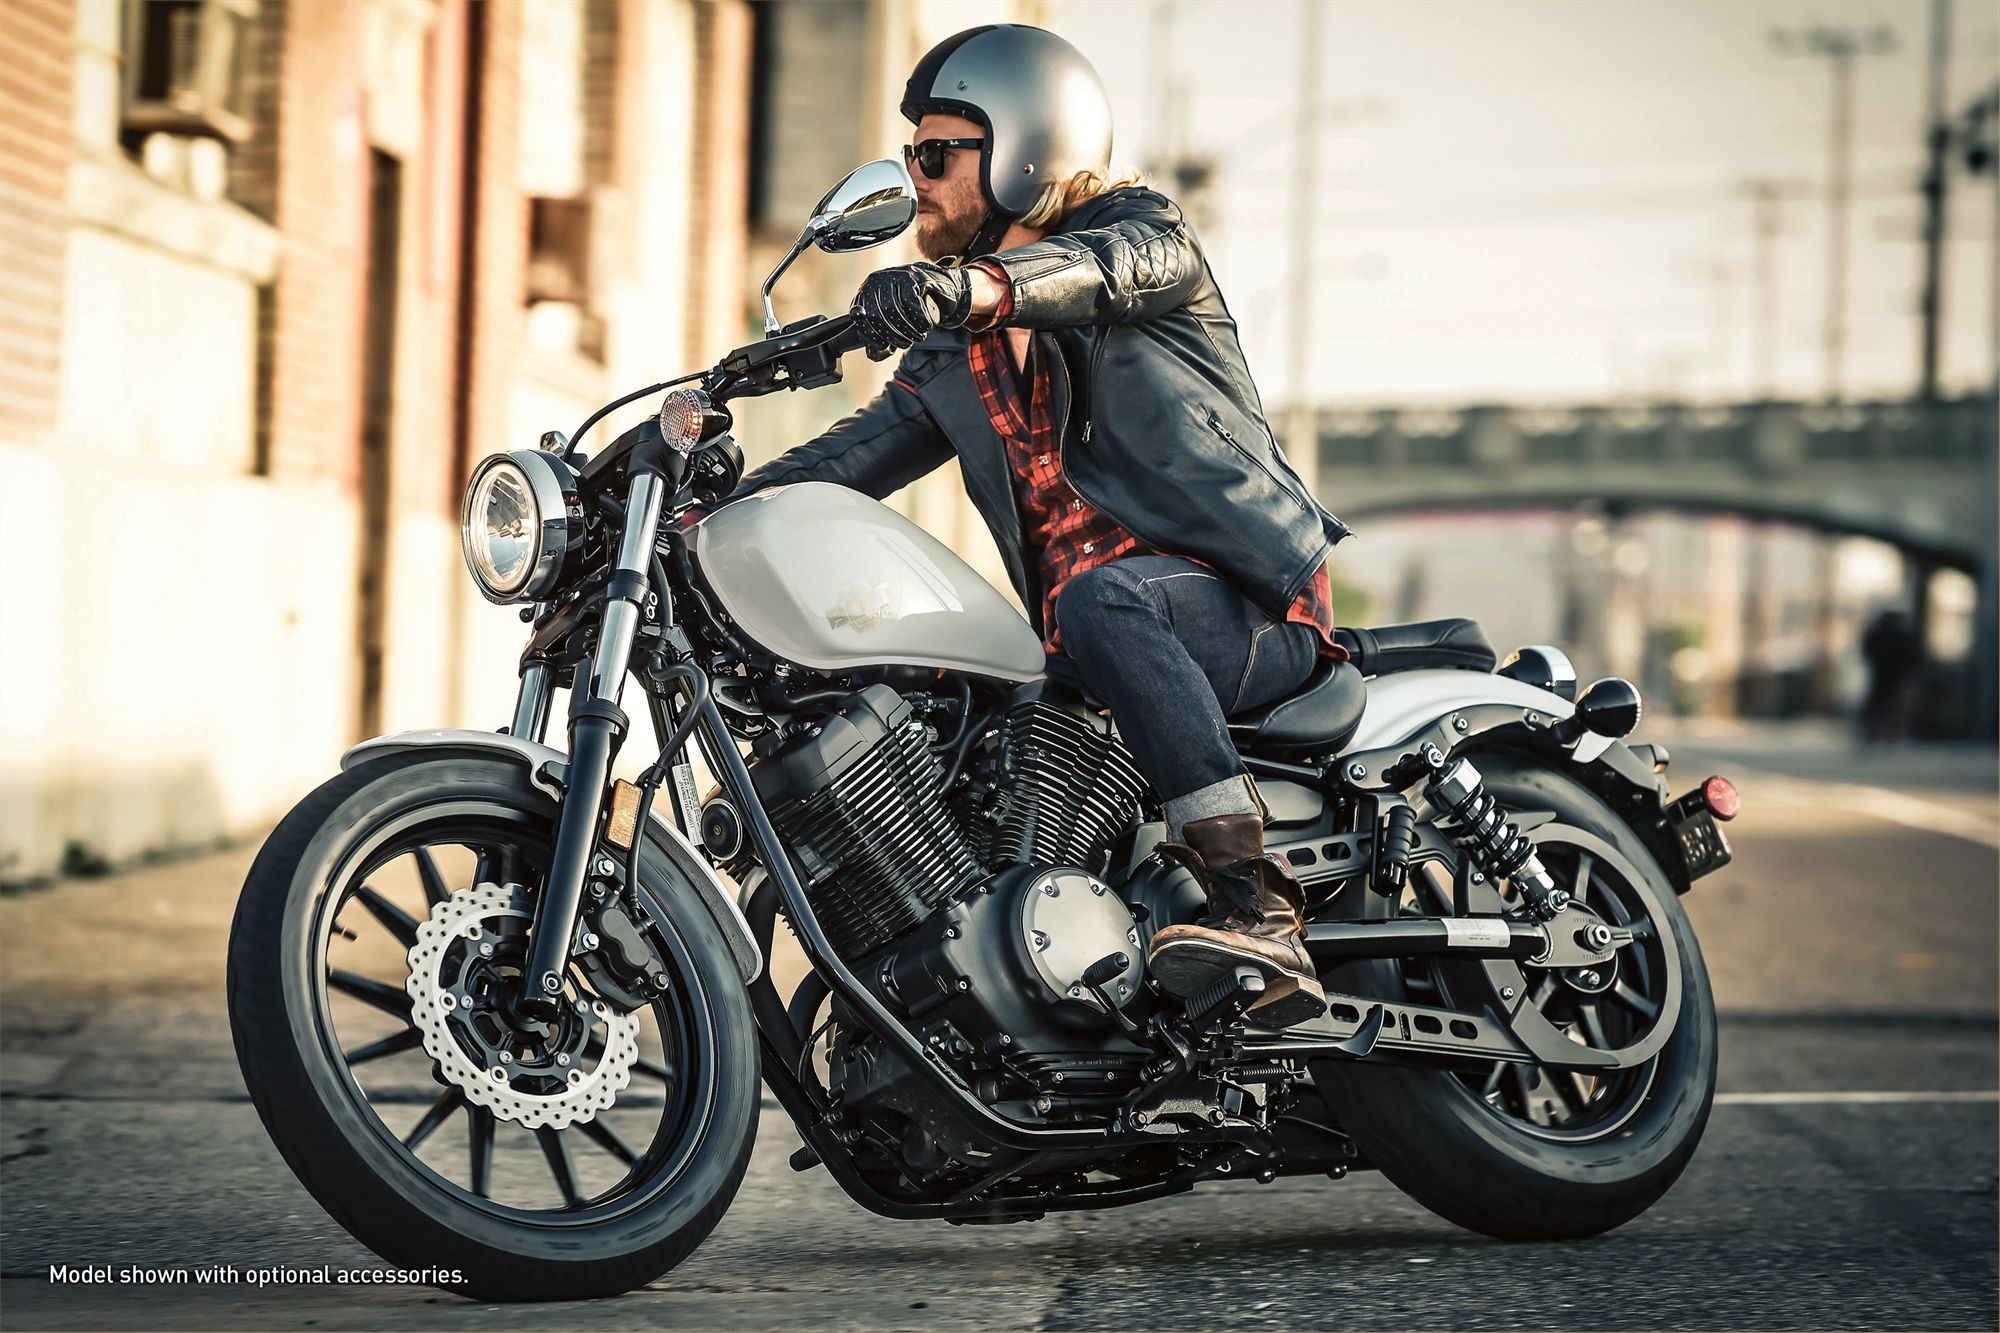 Yamaha star motorcycles has just introduced the bolt a new yamaha cruiser a closer look at the bolt with its specifications and photographs